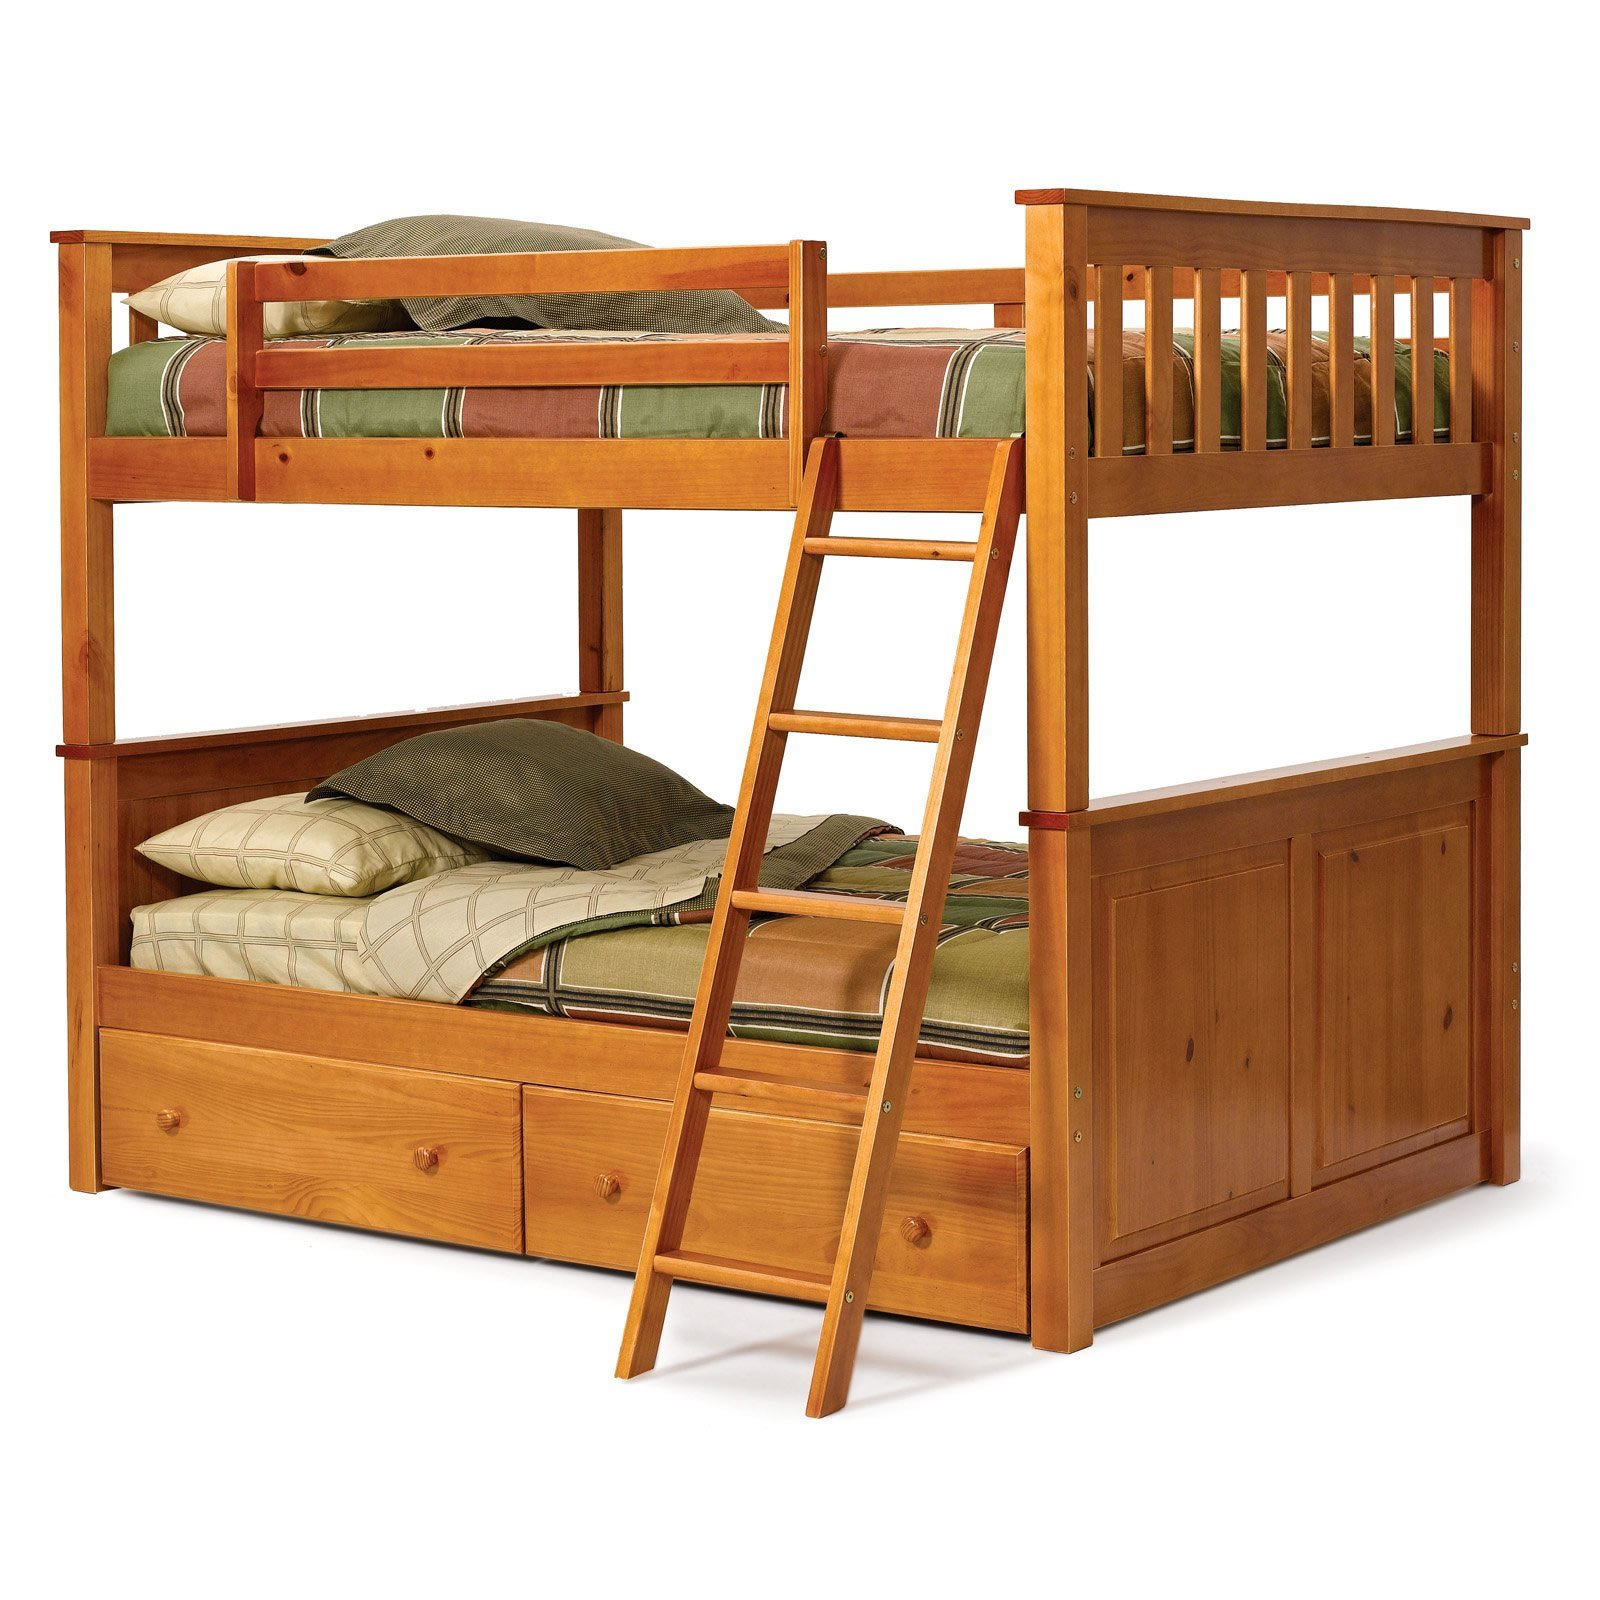 Bunk Bed Plans For Kids Choosing Best Bunk Beds For Your Kids Wikiperiment